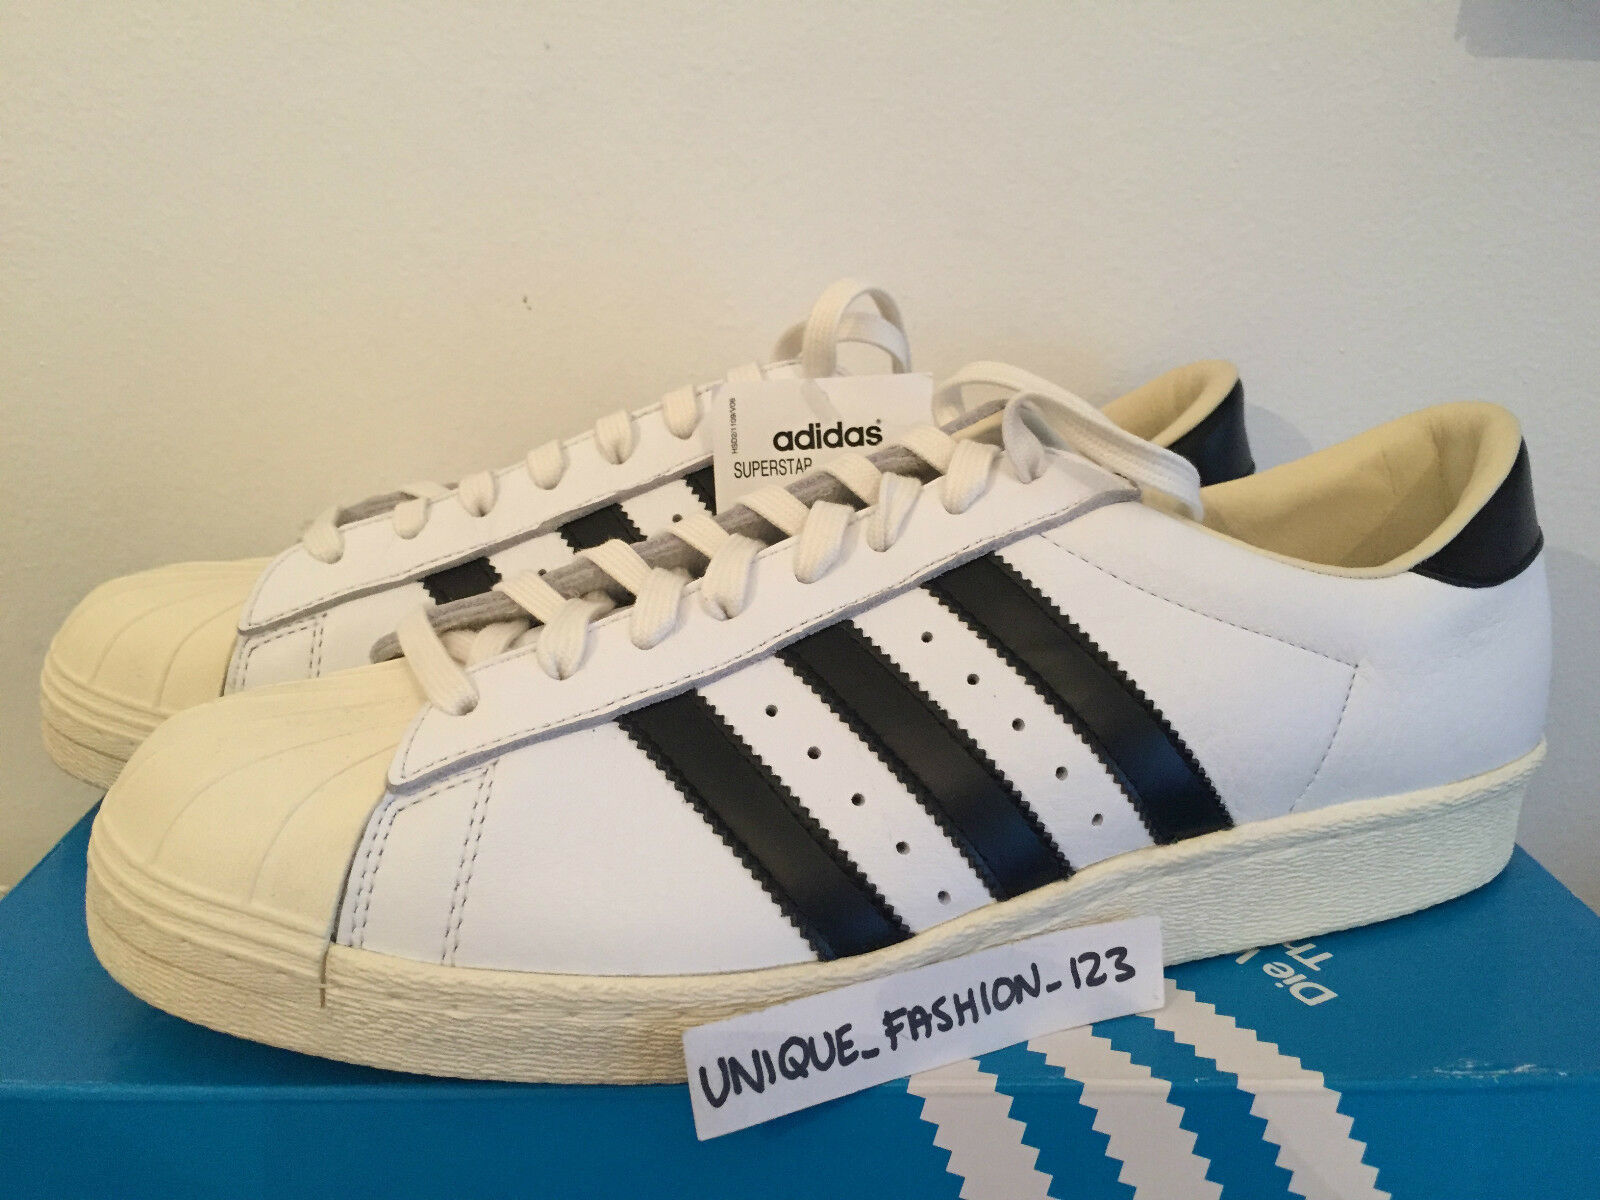 ADIDAS CONSORTIUM FRANCE11 SUPERSTAR VINTAGE MADE IN FRANCE11 CONSORTIUM US 11.5 46 80S OG blanc 8ea5e4